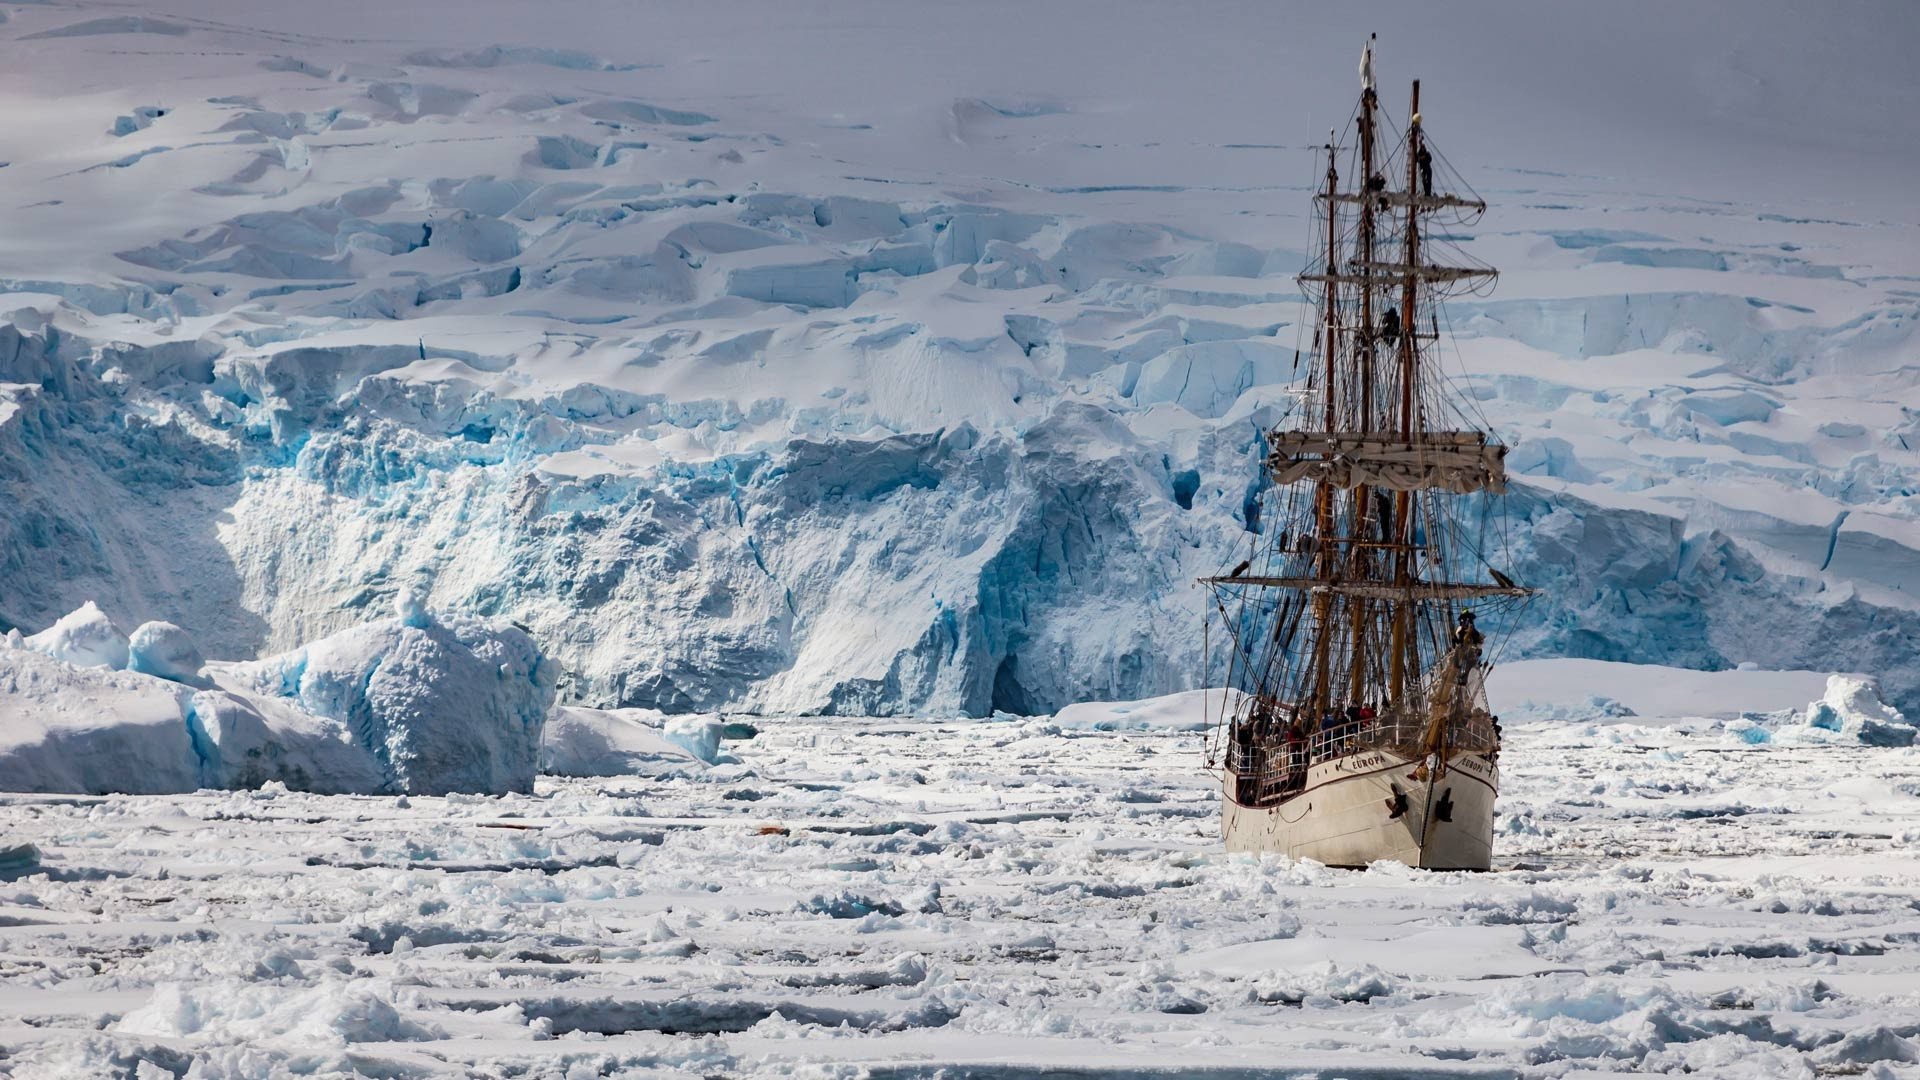 Res: 1920x1080, Tall Ship in an icy sea